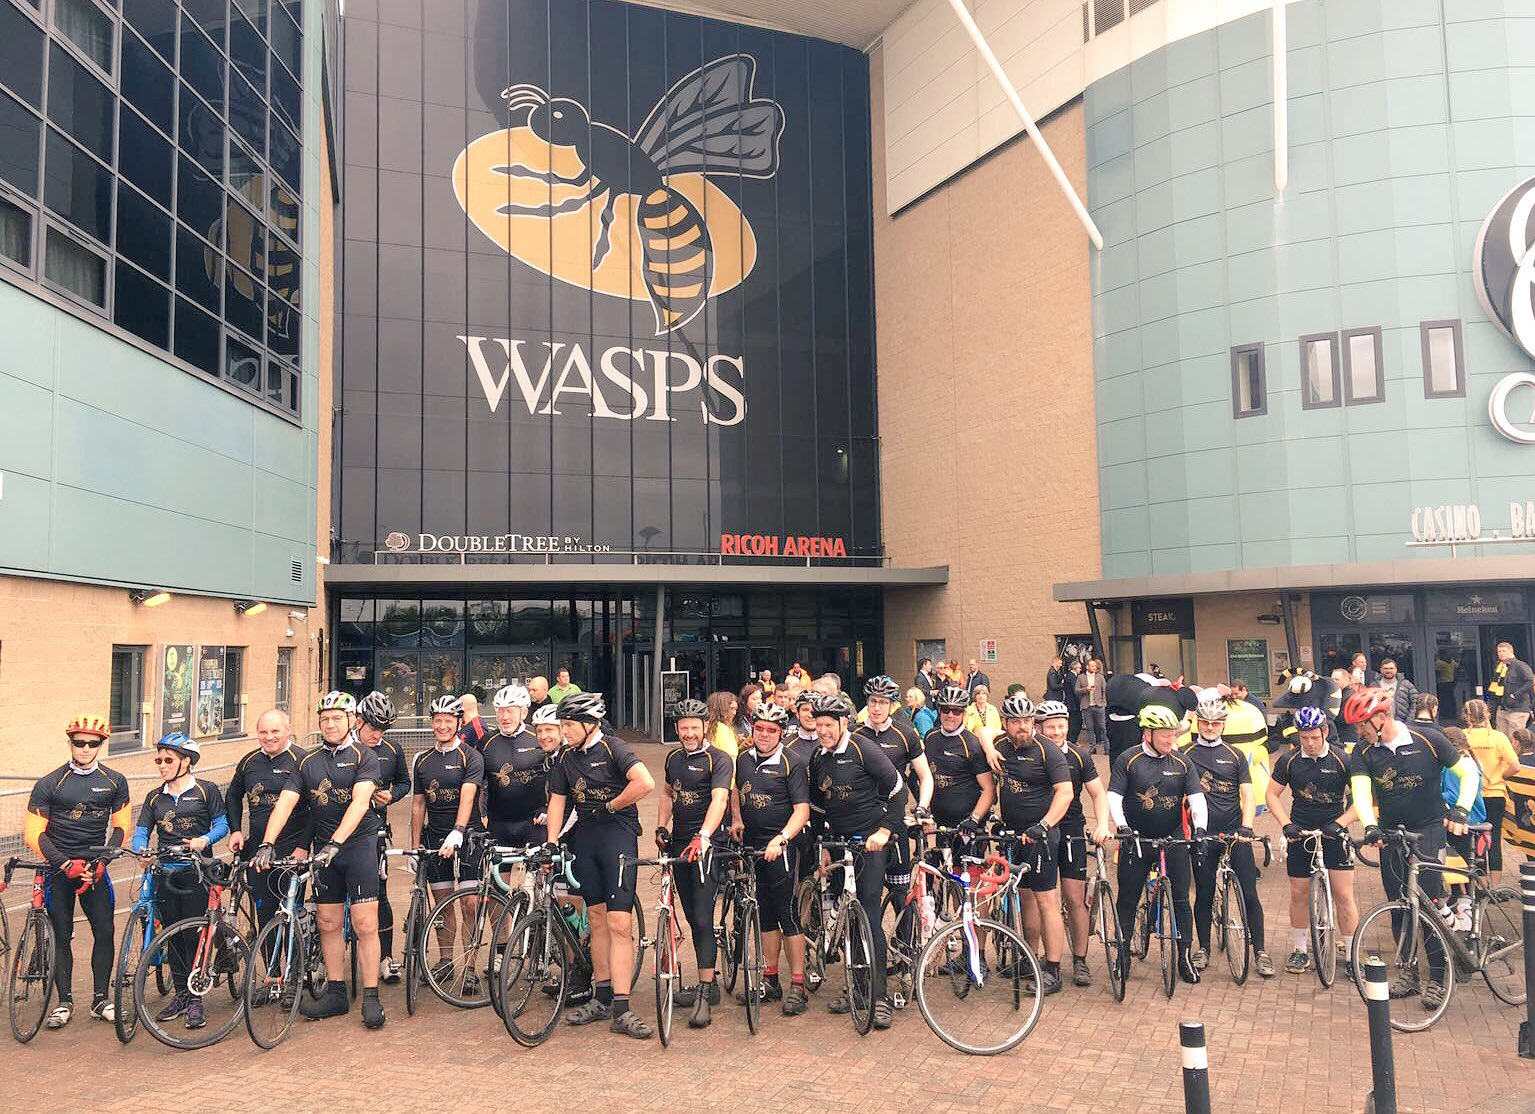 Well done to all our riders who were welcomed to the Ricoh #wasps150th @WaspsRugby #wasps150ride. Great effort. https://t.co/X9NdTIgeoj